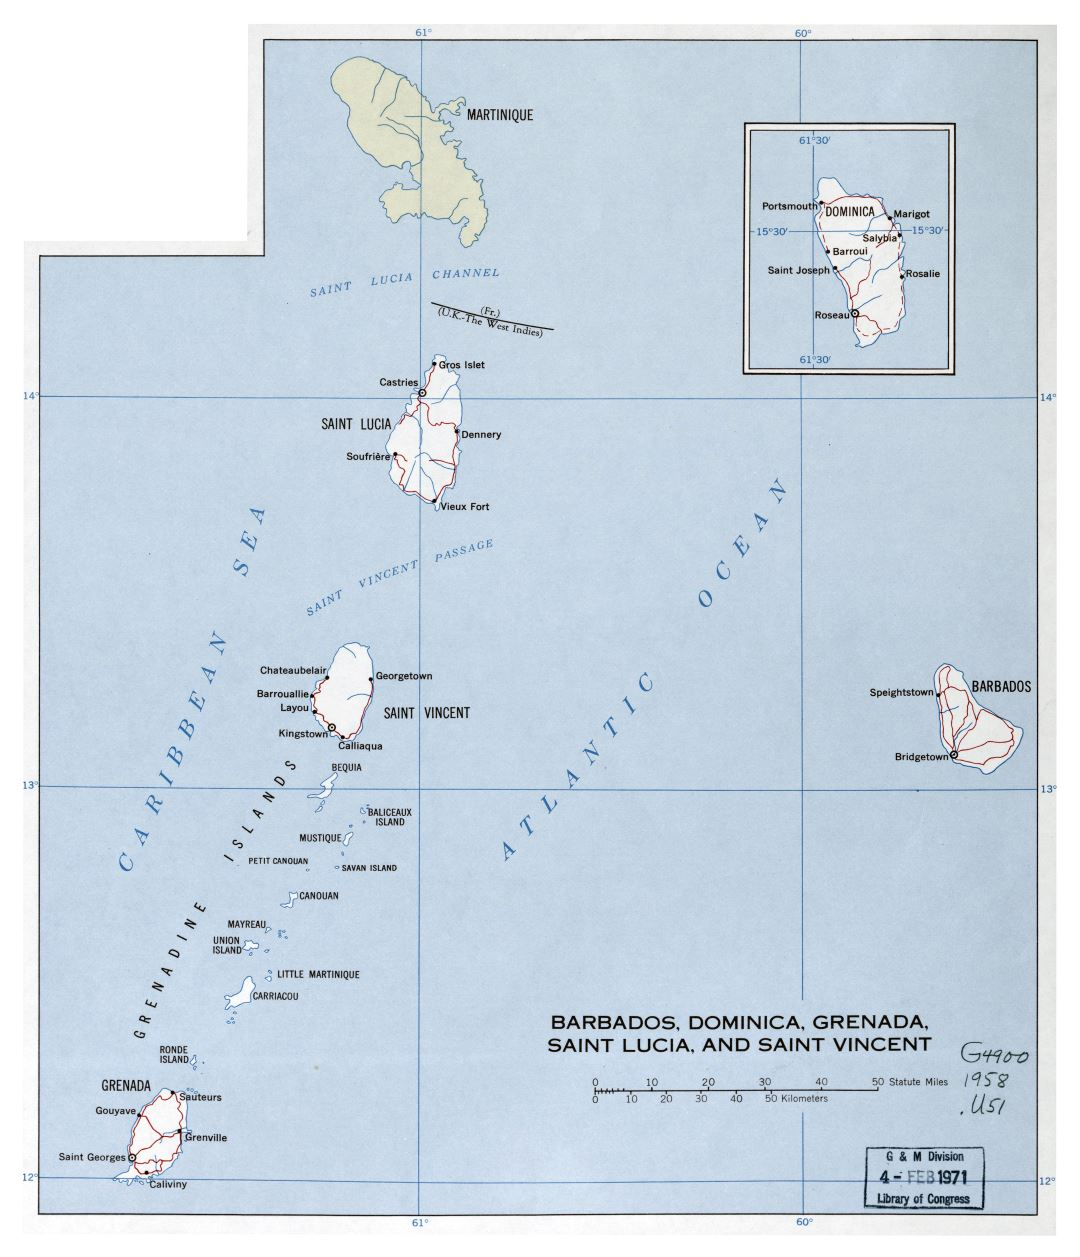 Large detailed political map of Barbados, Dominica, Grenada, Saint Lucia and Saint Vincent with roads and cities - 1958